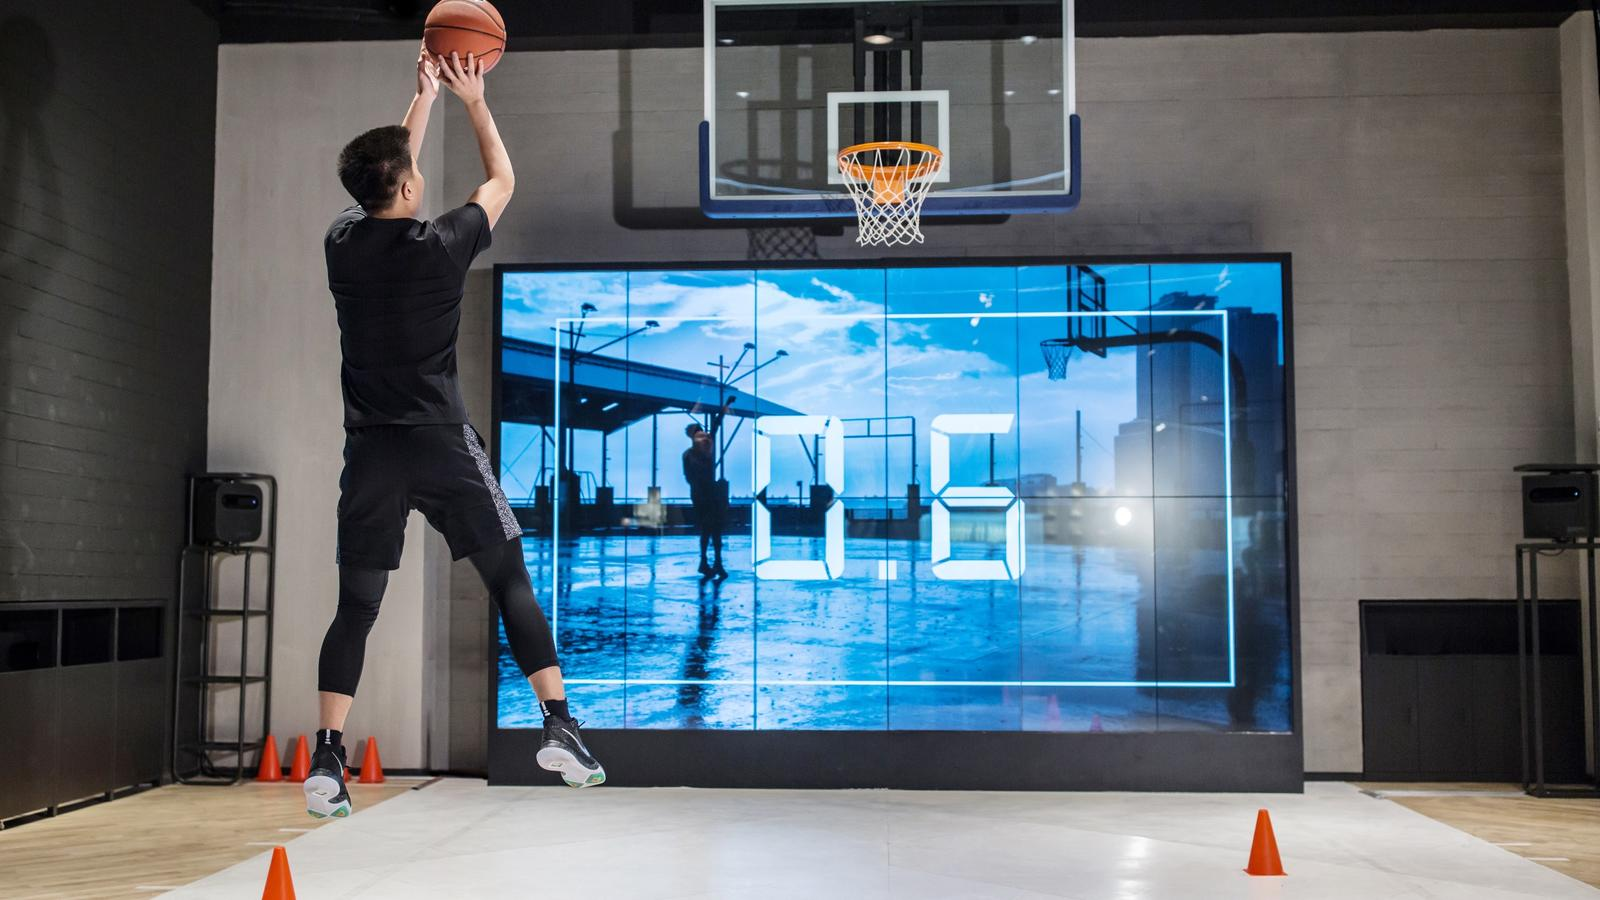 The In First Jordan Nikeamp; Experience LookInside Store Basketball UpzMVSq